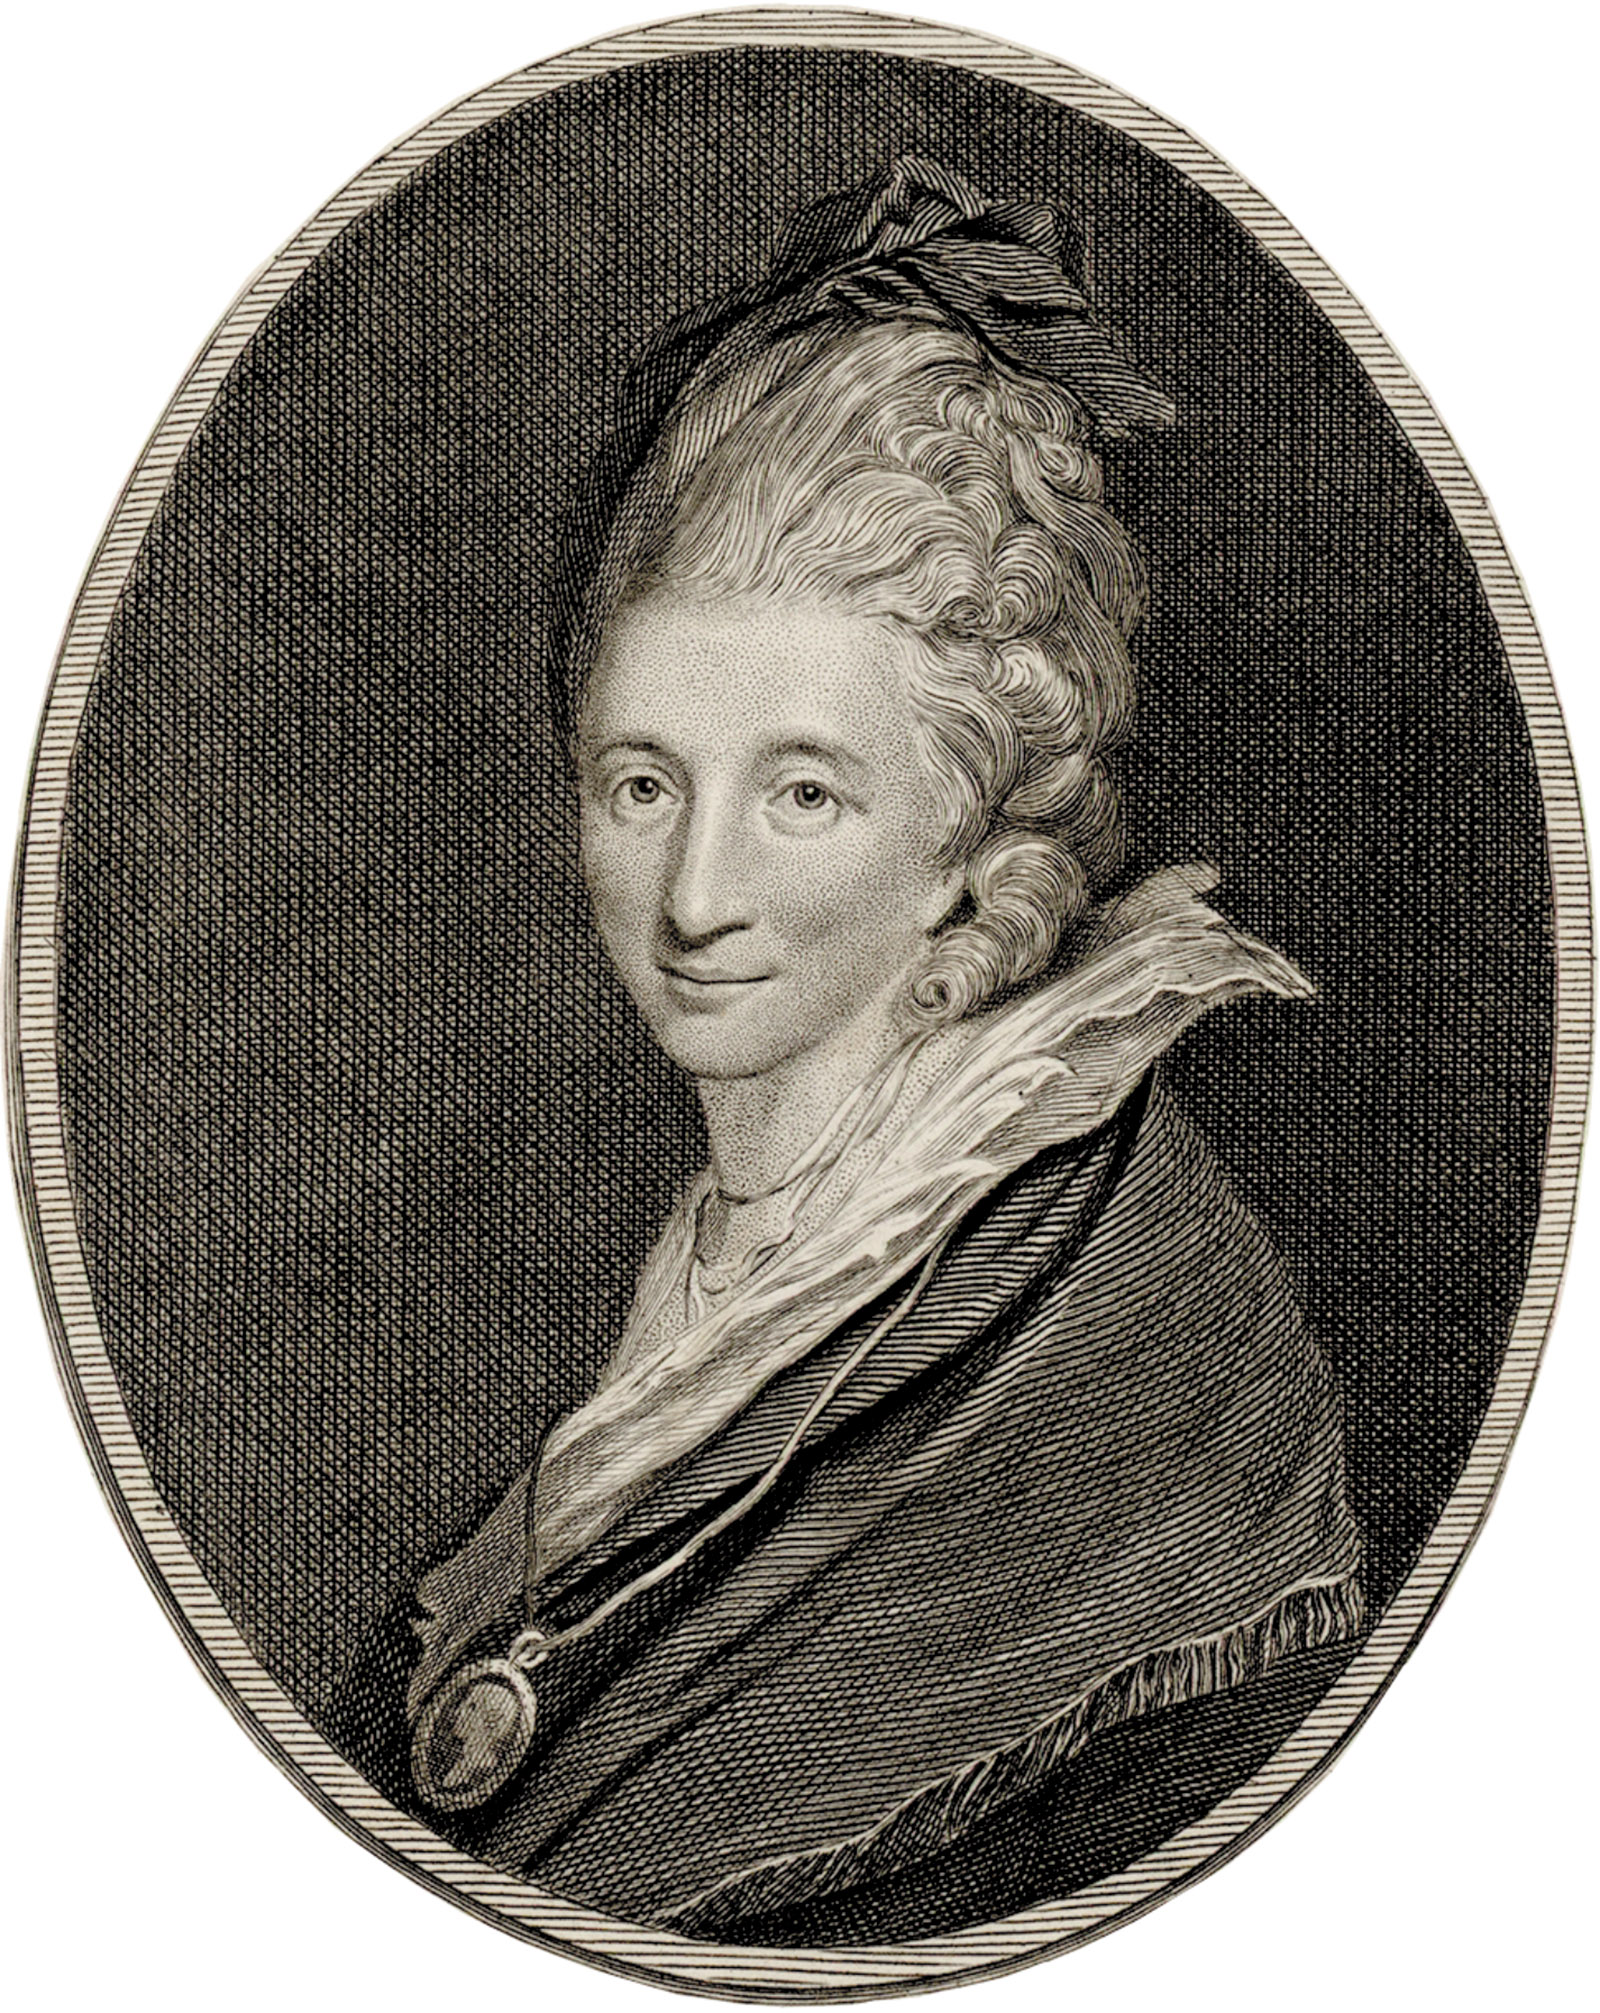 Engraving of Hester Thrale, 1781